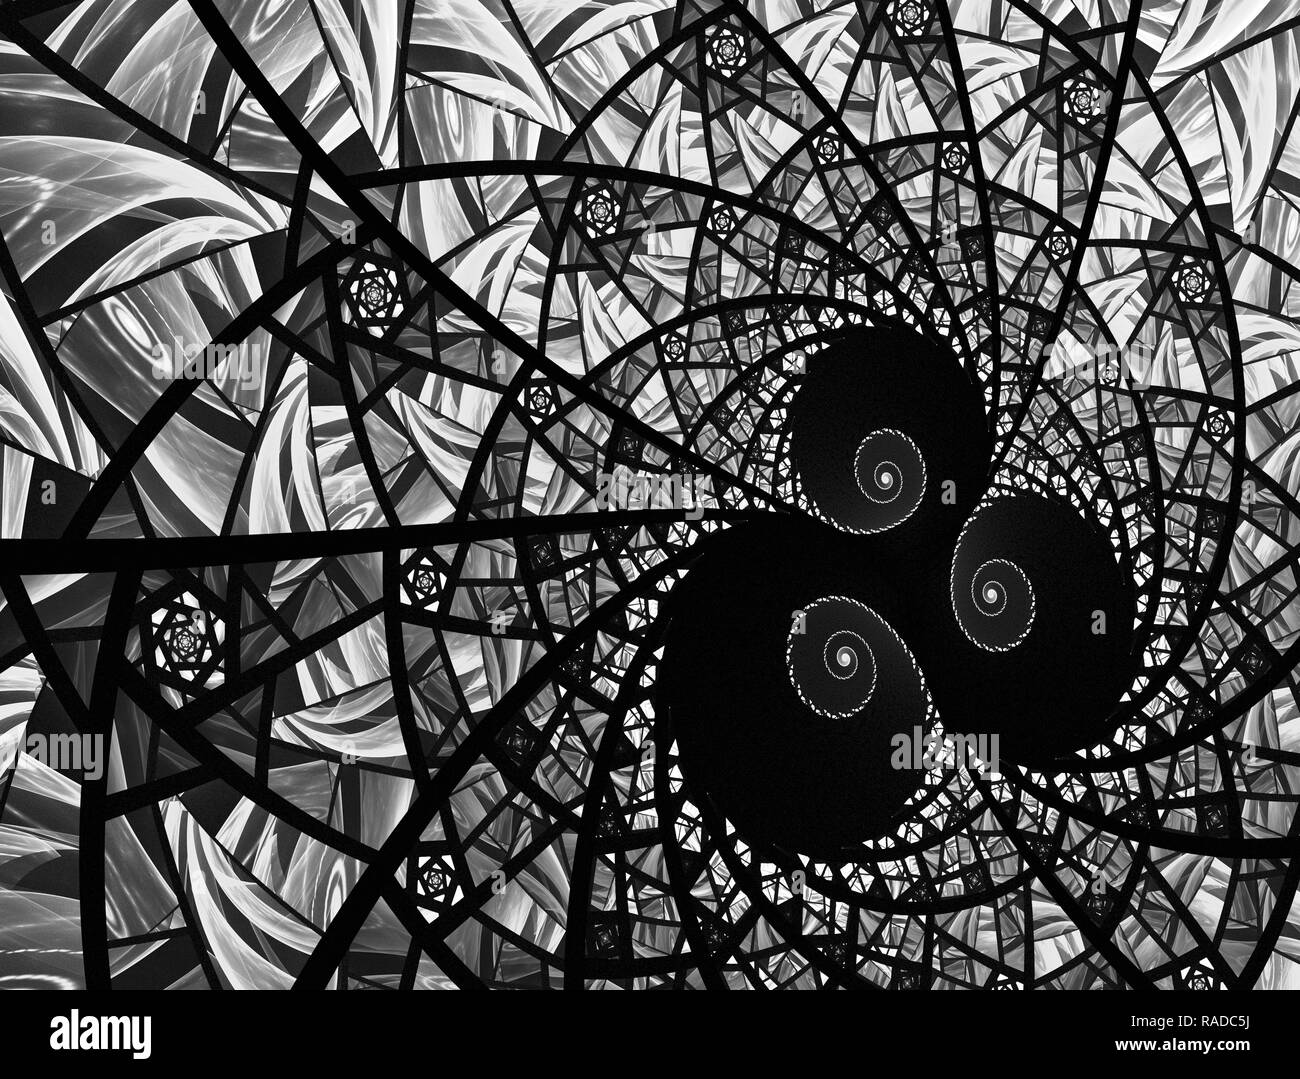 Geometric design. Mosaic texture. Stained glass effect. Artistic abstraction composed of virtual stained glass fragments on the subject art, craft and - Stock Image